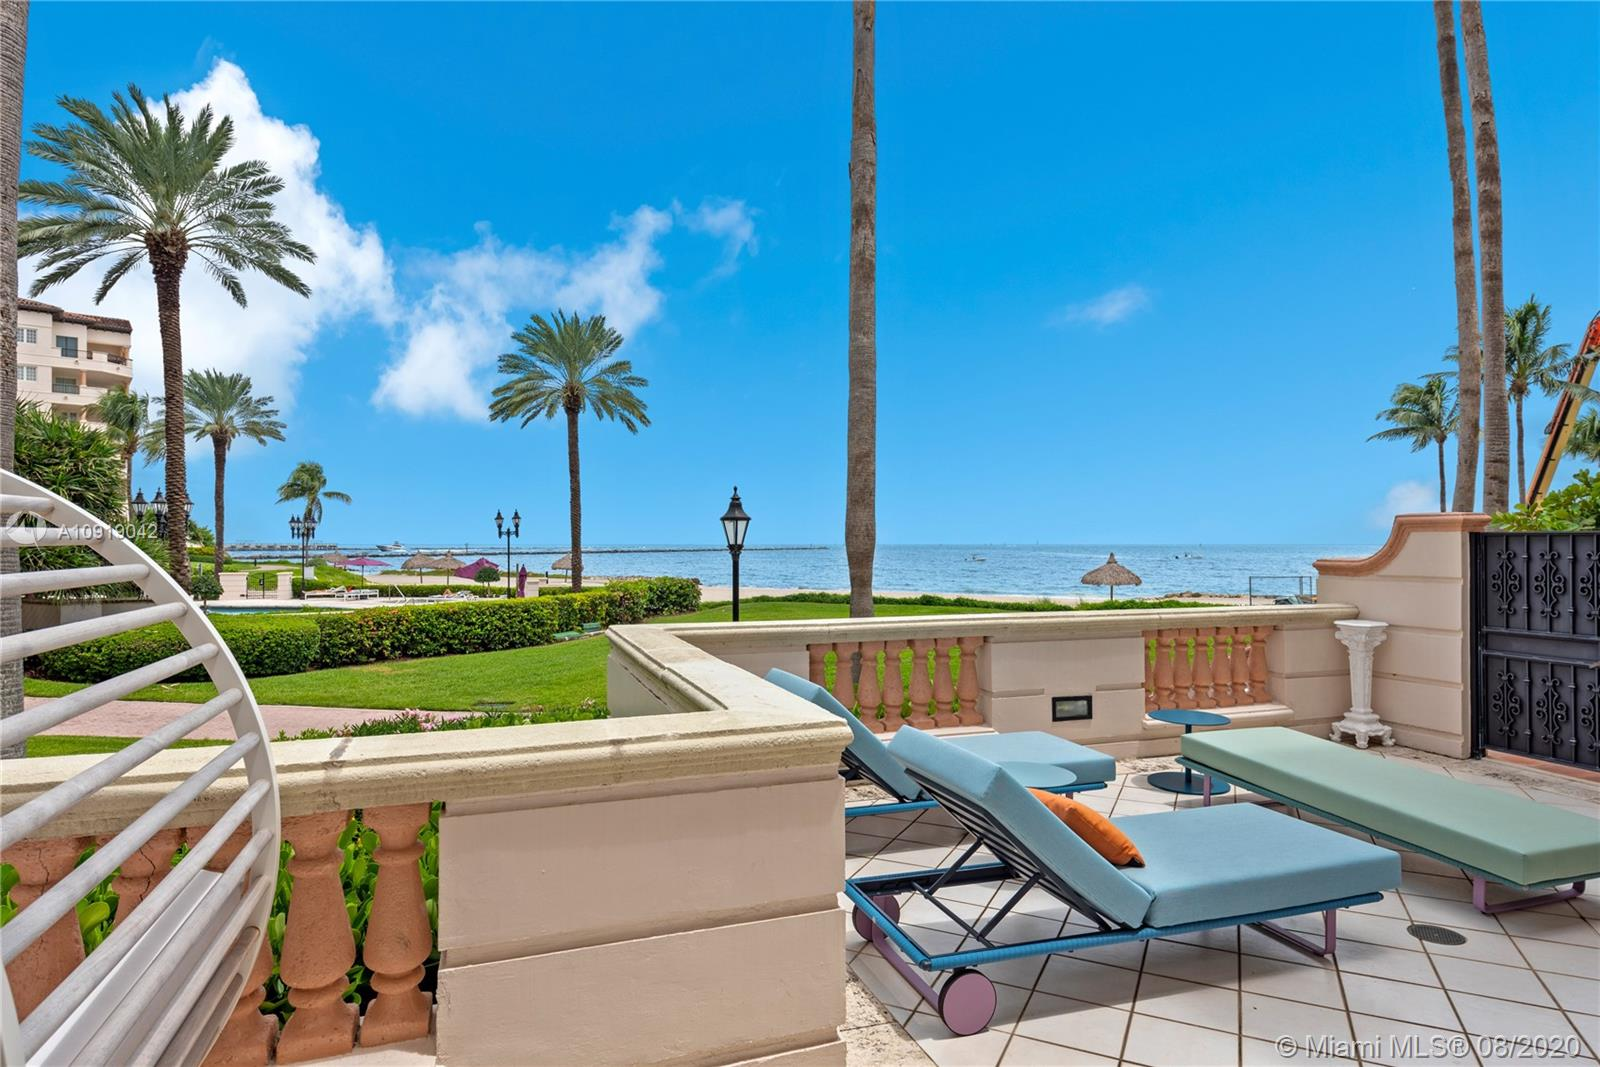 Unique ground floor corner unit. Private beach steps away from your door. Unobstructed ocean view.Renovated 4bed/3.5bath 3,580 sf. oceanfront residence. Expansive wrap around terrace. No expense spared on renovation, custom built non toxic high end finishes, living edge mirrors, custom built in jellyfish aquarium, hidden bookcase doors. The 2nd and 3rd bedrooms are good size with full en-suite renovated baths and ample closet space. All bedrooms have their own private door out to the terrace. Spectacular ocean views from living room, dining room, den and kitchen. Brand new custom appliances. Fisher Island amenities include world class golf, tennis, marina, beach club and more.